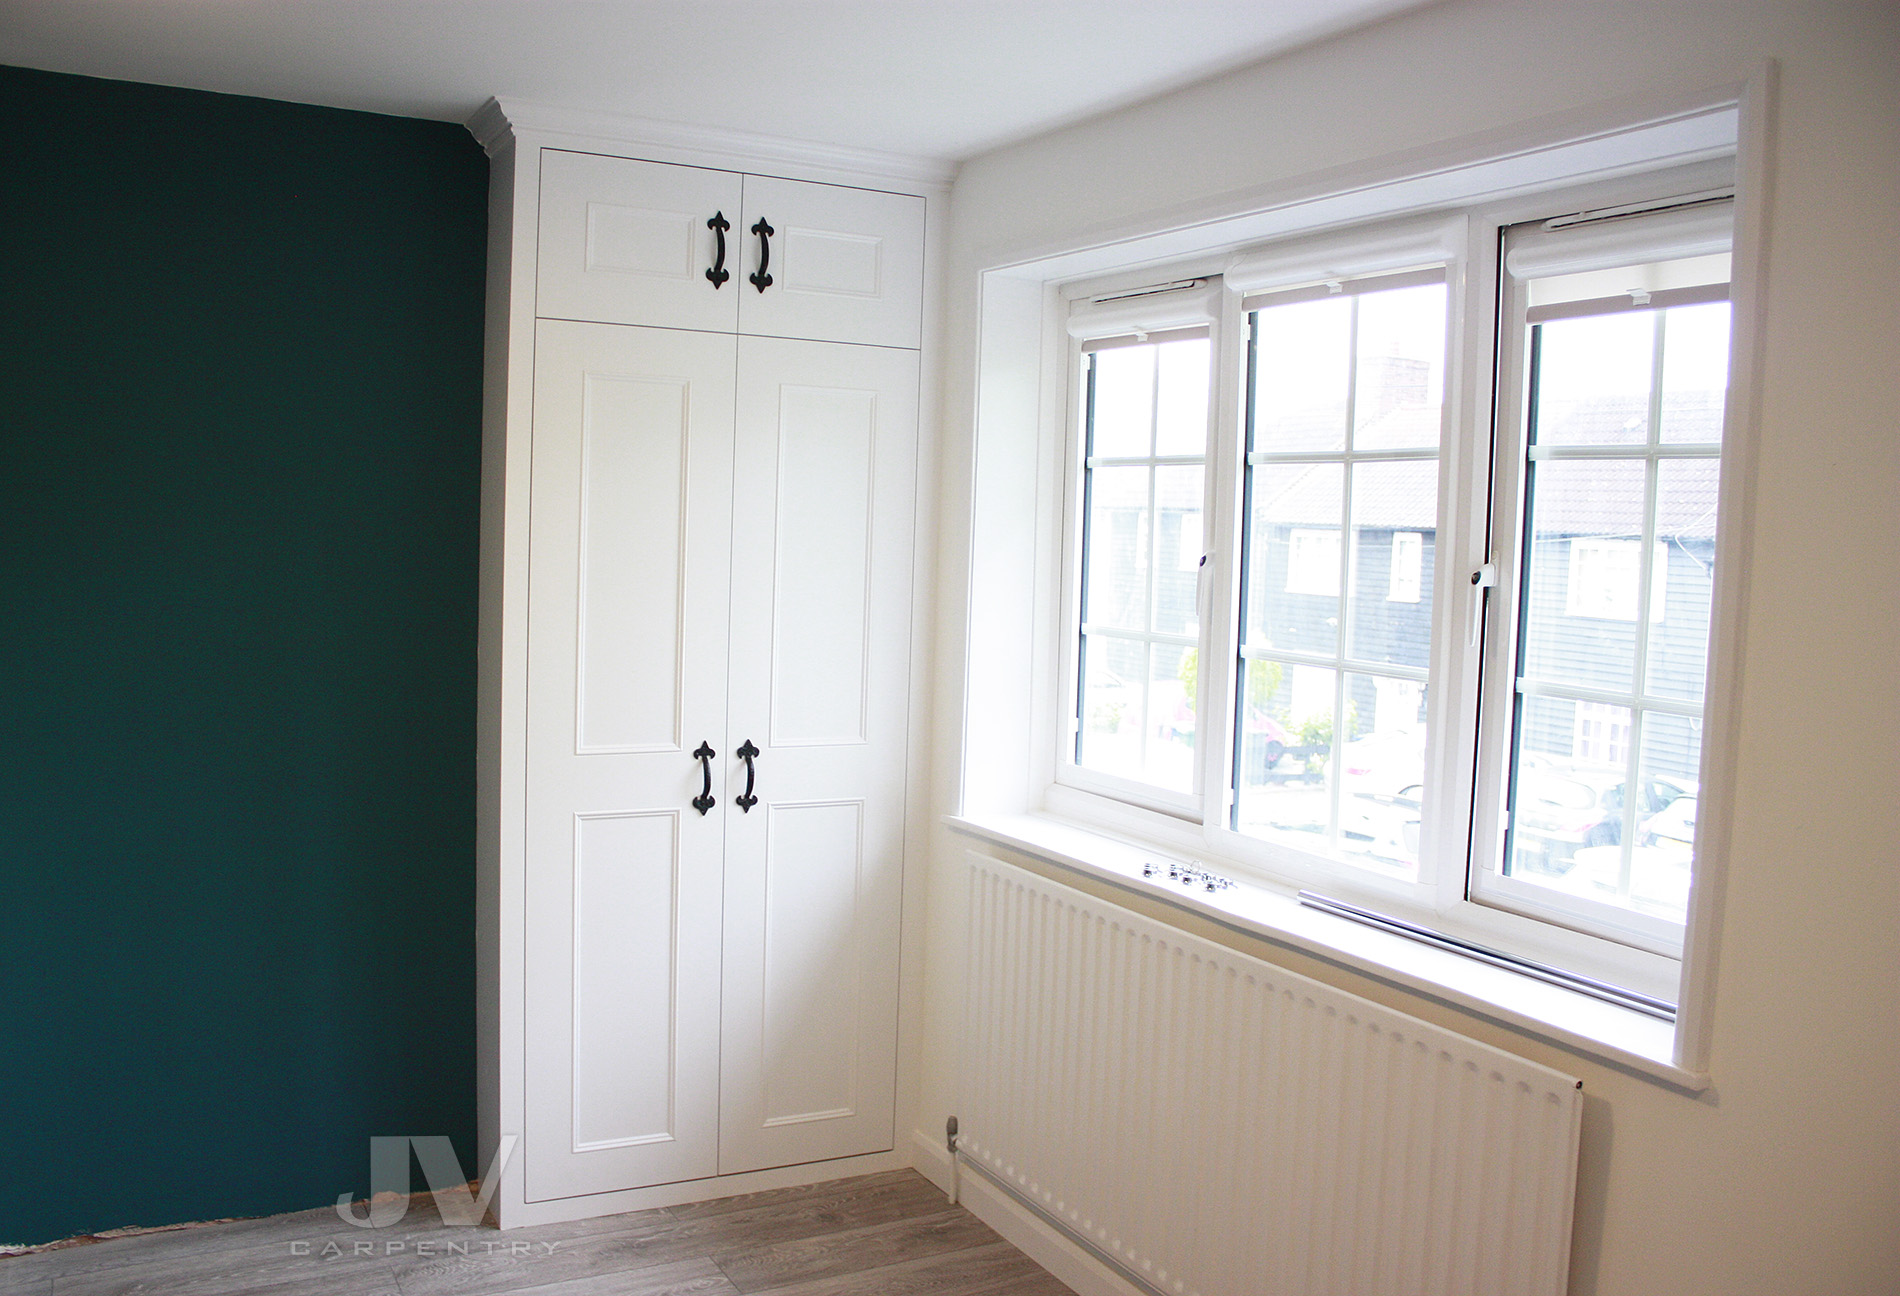 fitted wardrobe close to the window